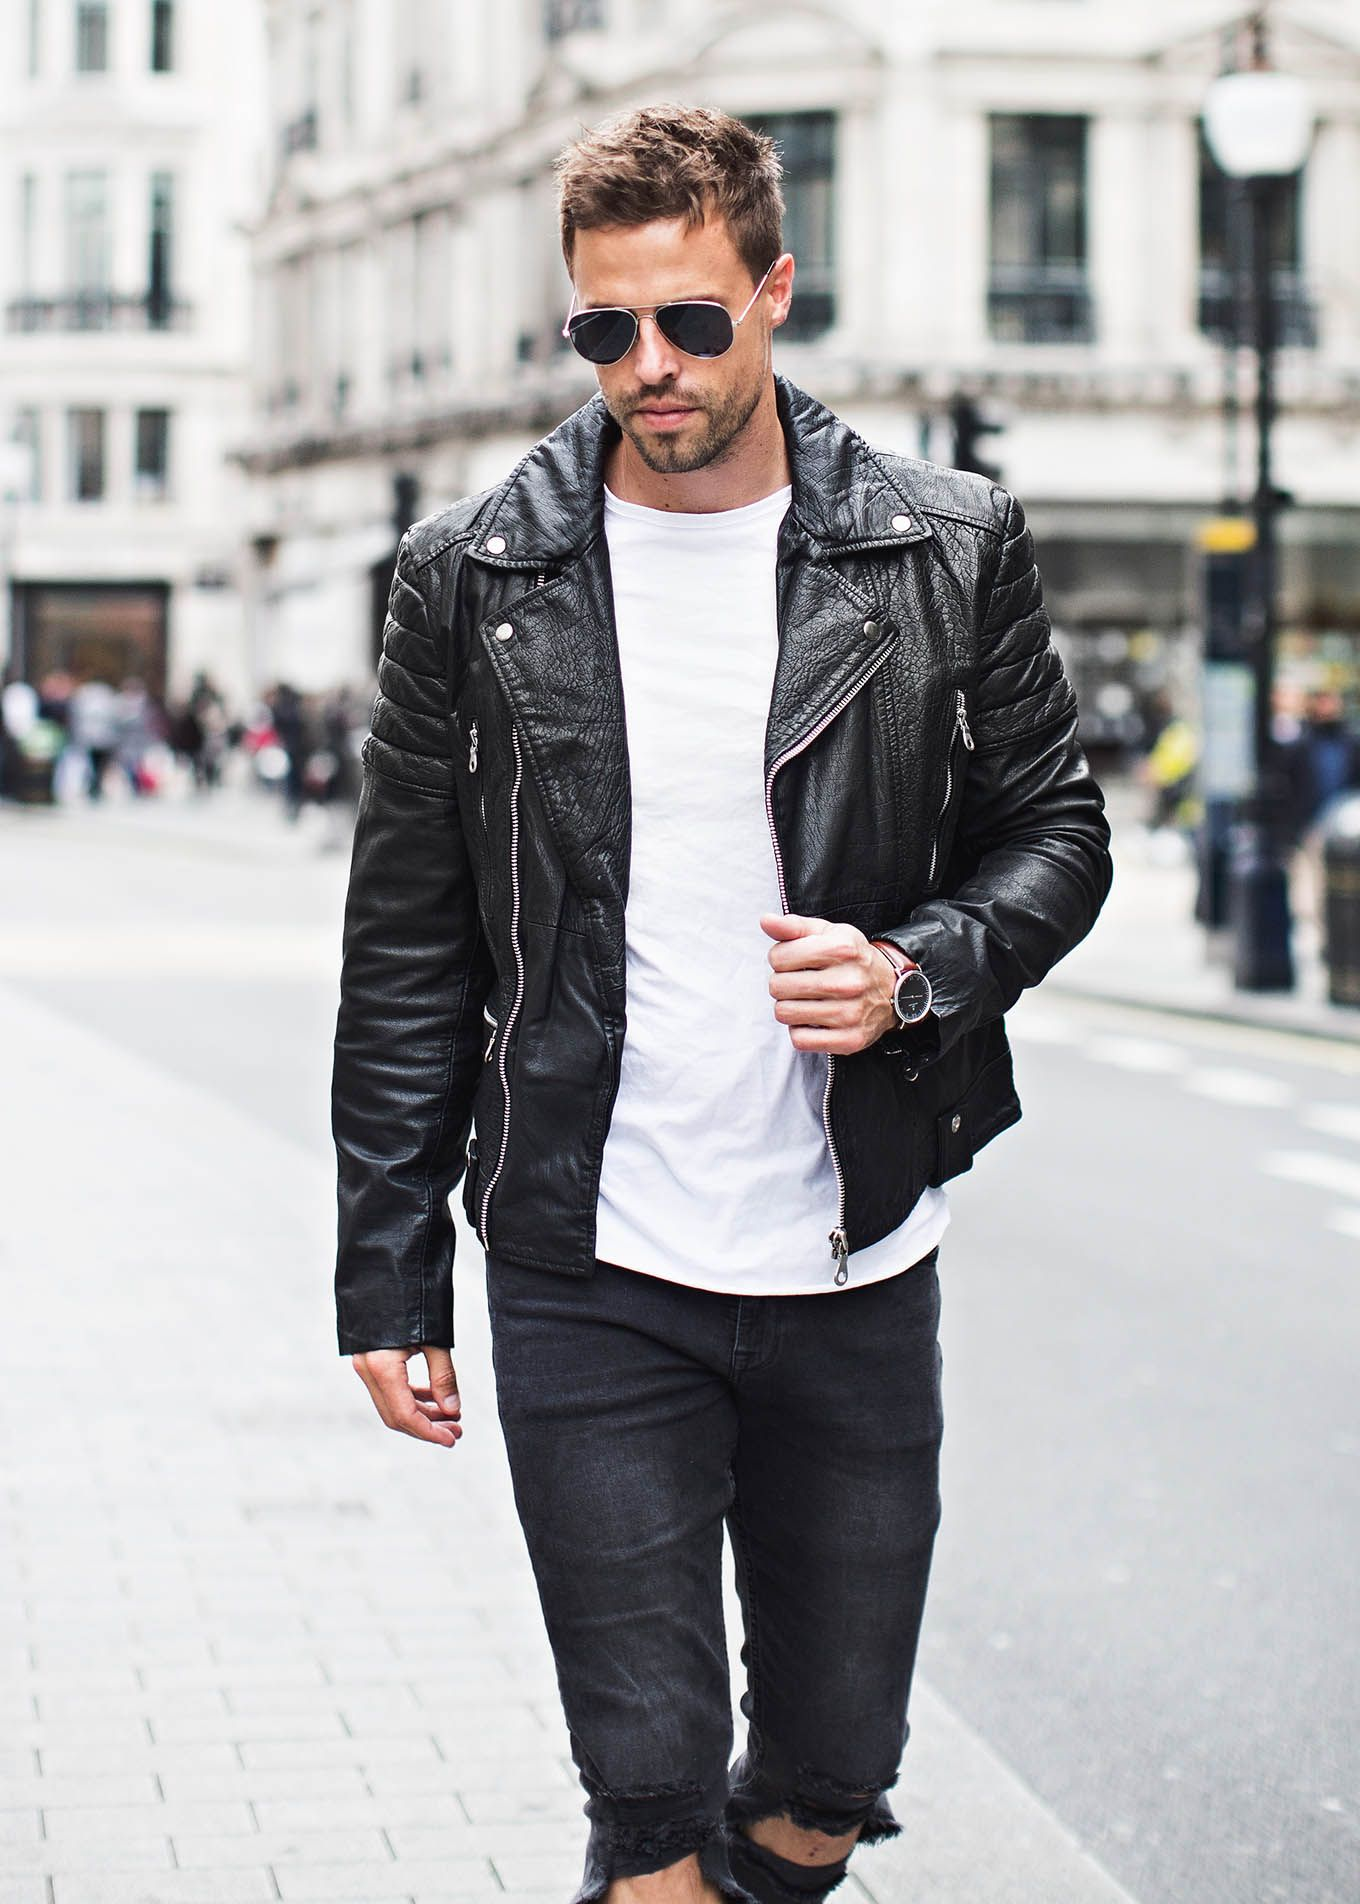 Men's Casual Fasion Mens outfits, Jackets men fashion